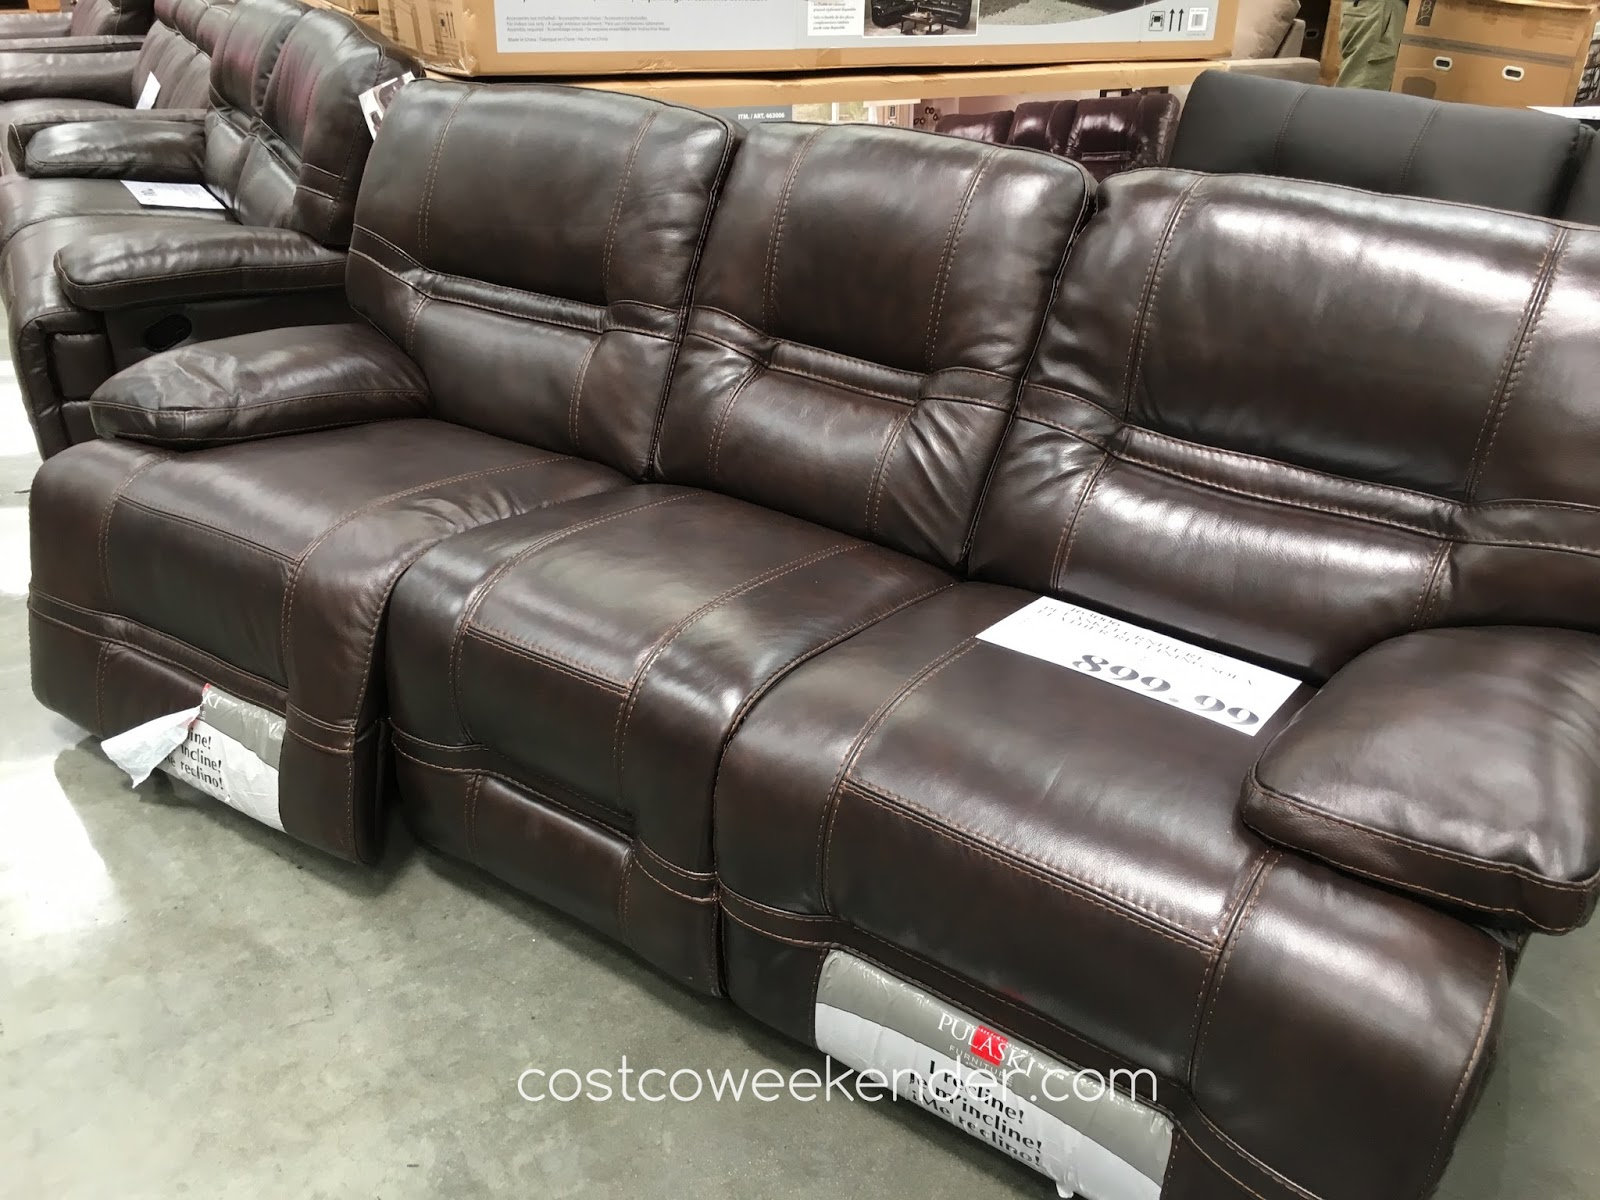 pulaski furniture leather reclining sofa costco weekender rh costcoweekender com Pulaski Sectional Costco Pulaski Chaise Sofa Fabric